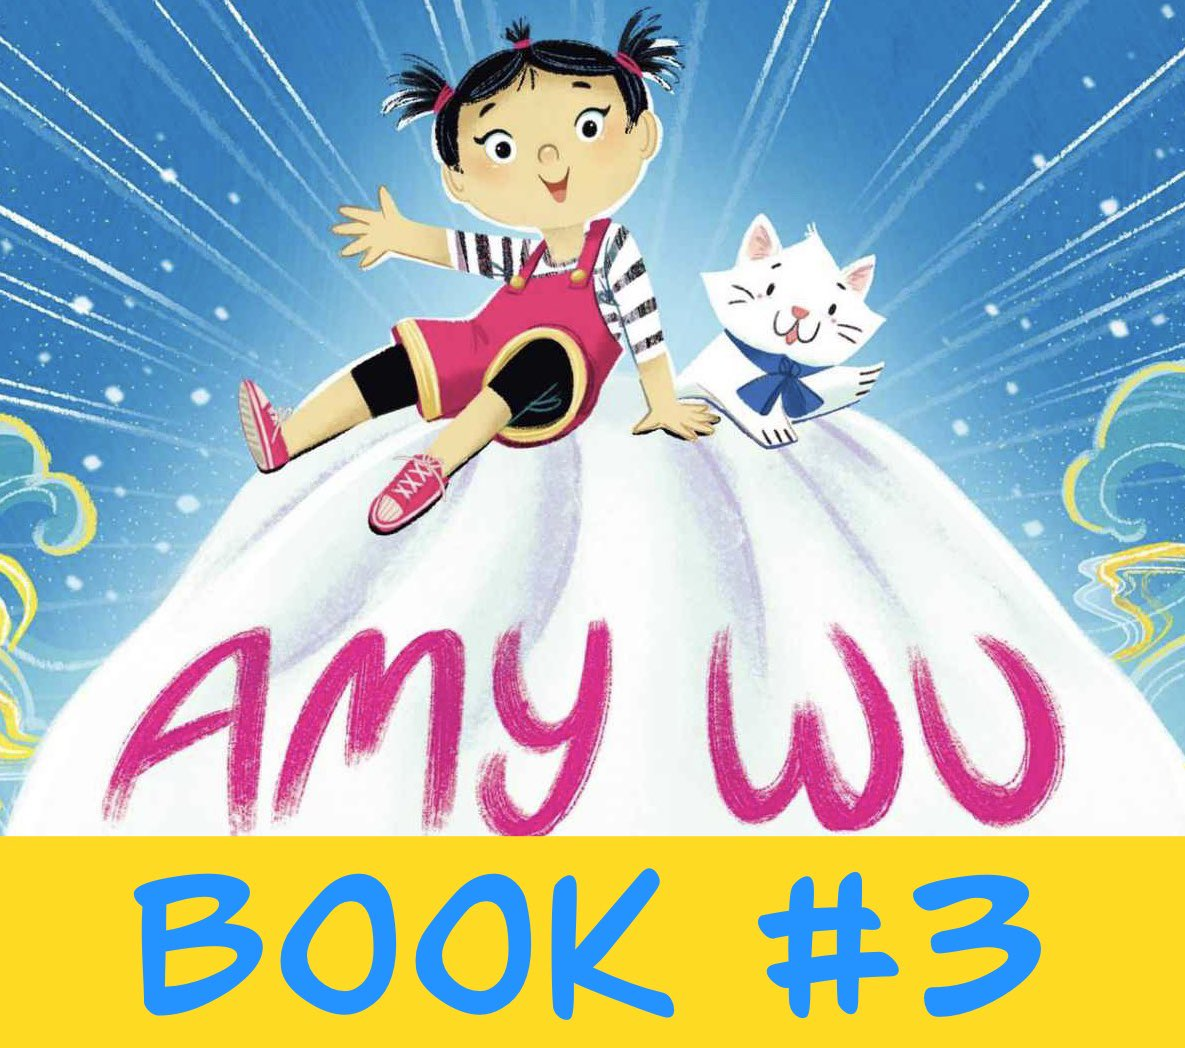 Super excited to share this - AMY WU is going to have a 3RD book! Look forward to this new adventure in 2022!  #kidlit @KatZhang @TracyMarchini @EmMorgen @SimonKIDS @SimonTeenCA #kidlitart #ChildrensBooks #picturebook https://t.co/hks52GZM8q